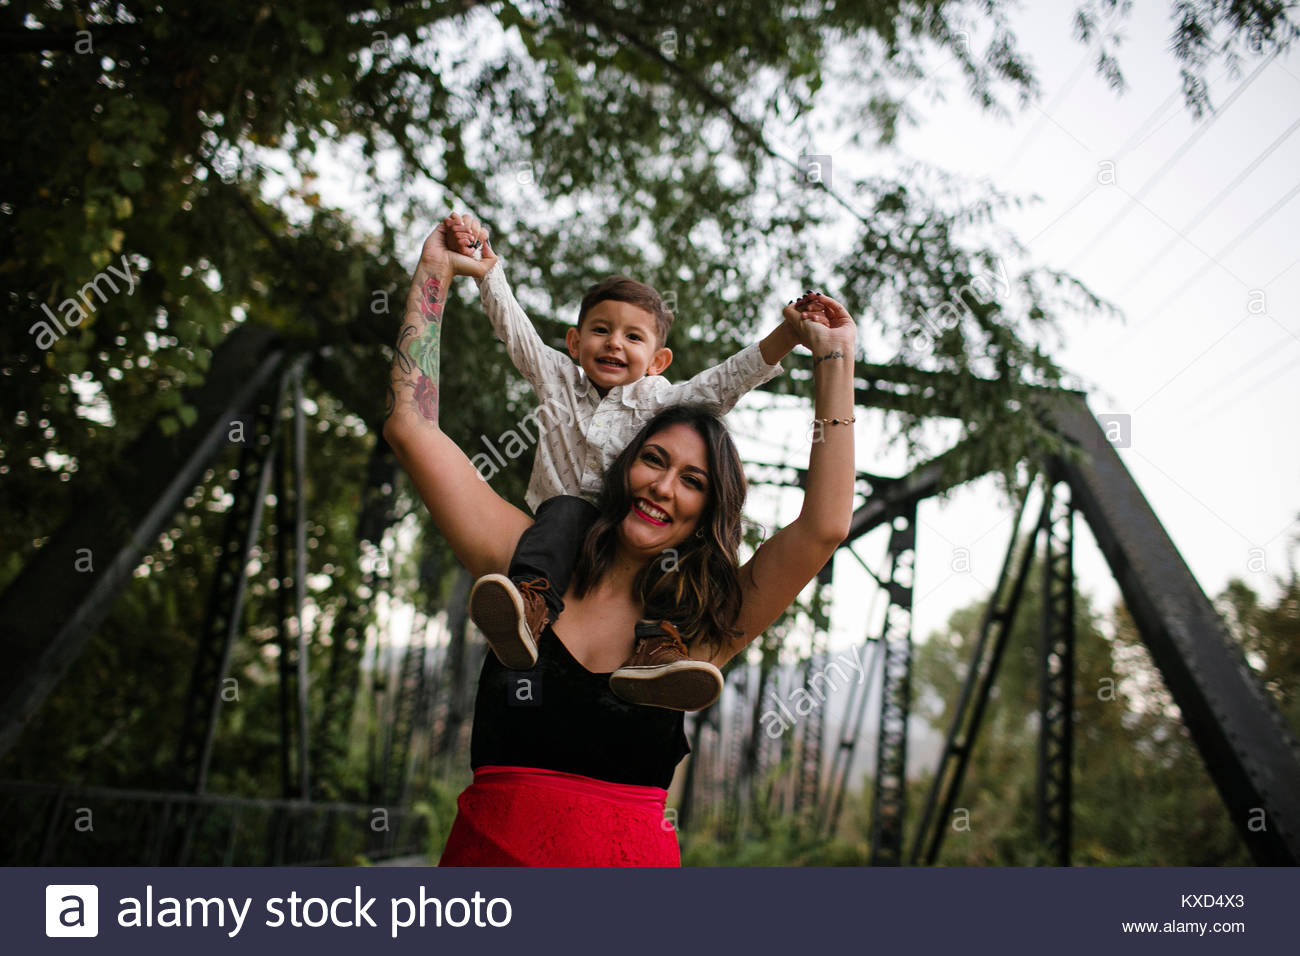 Portrait of happy mother and son on bridge - Stock Image